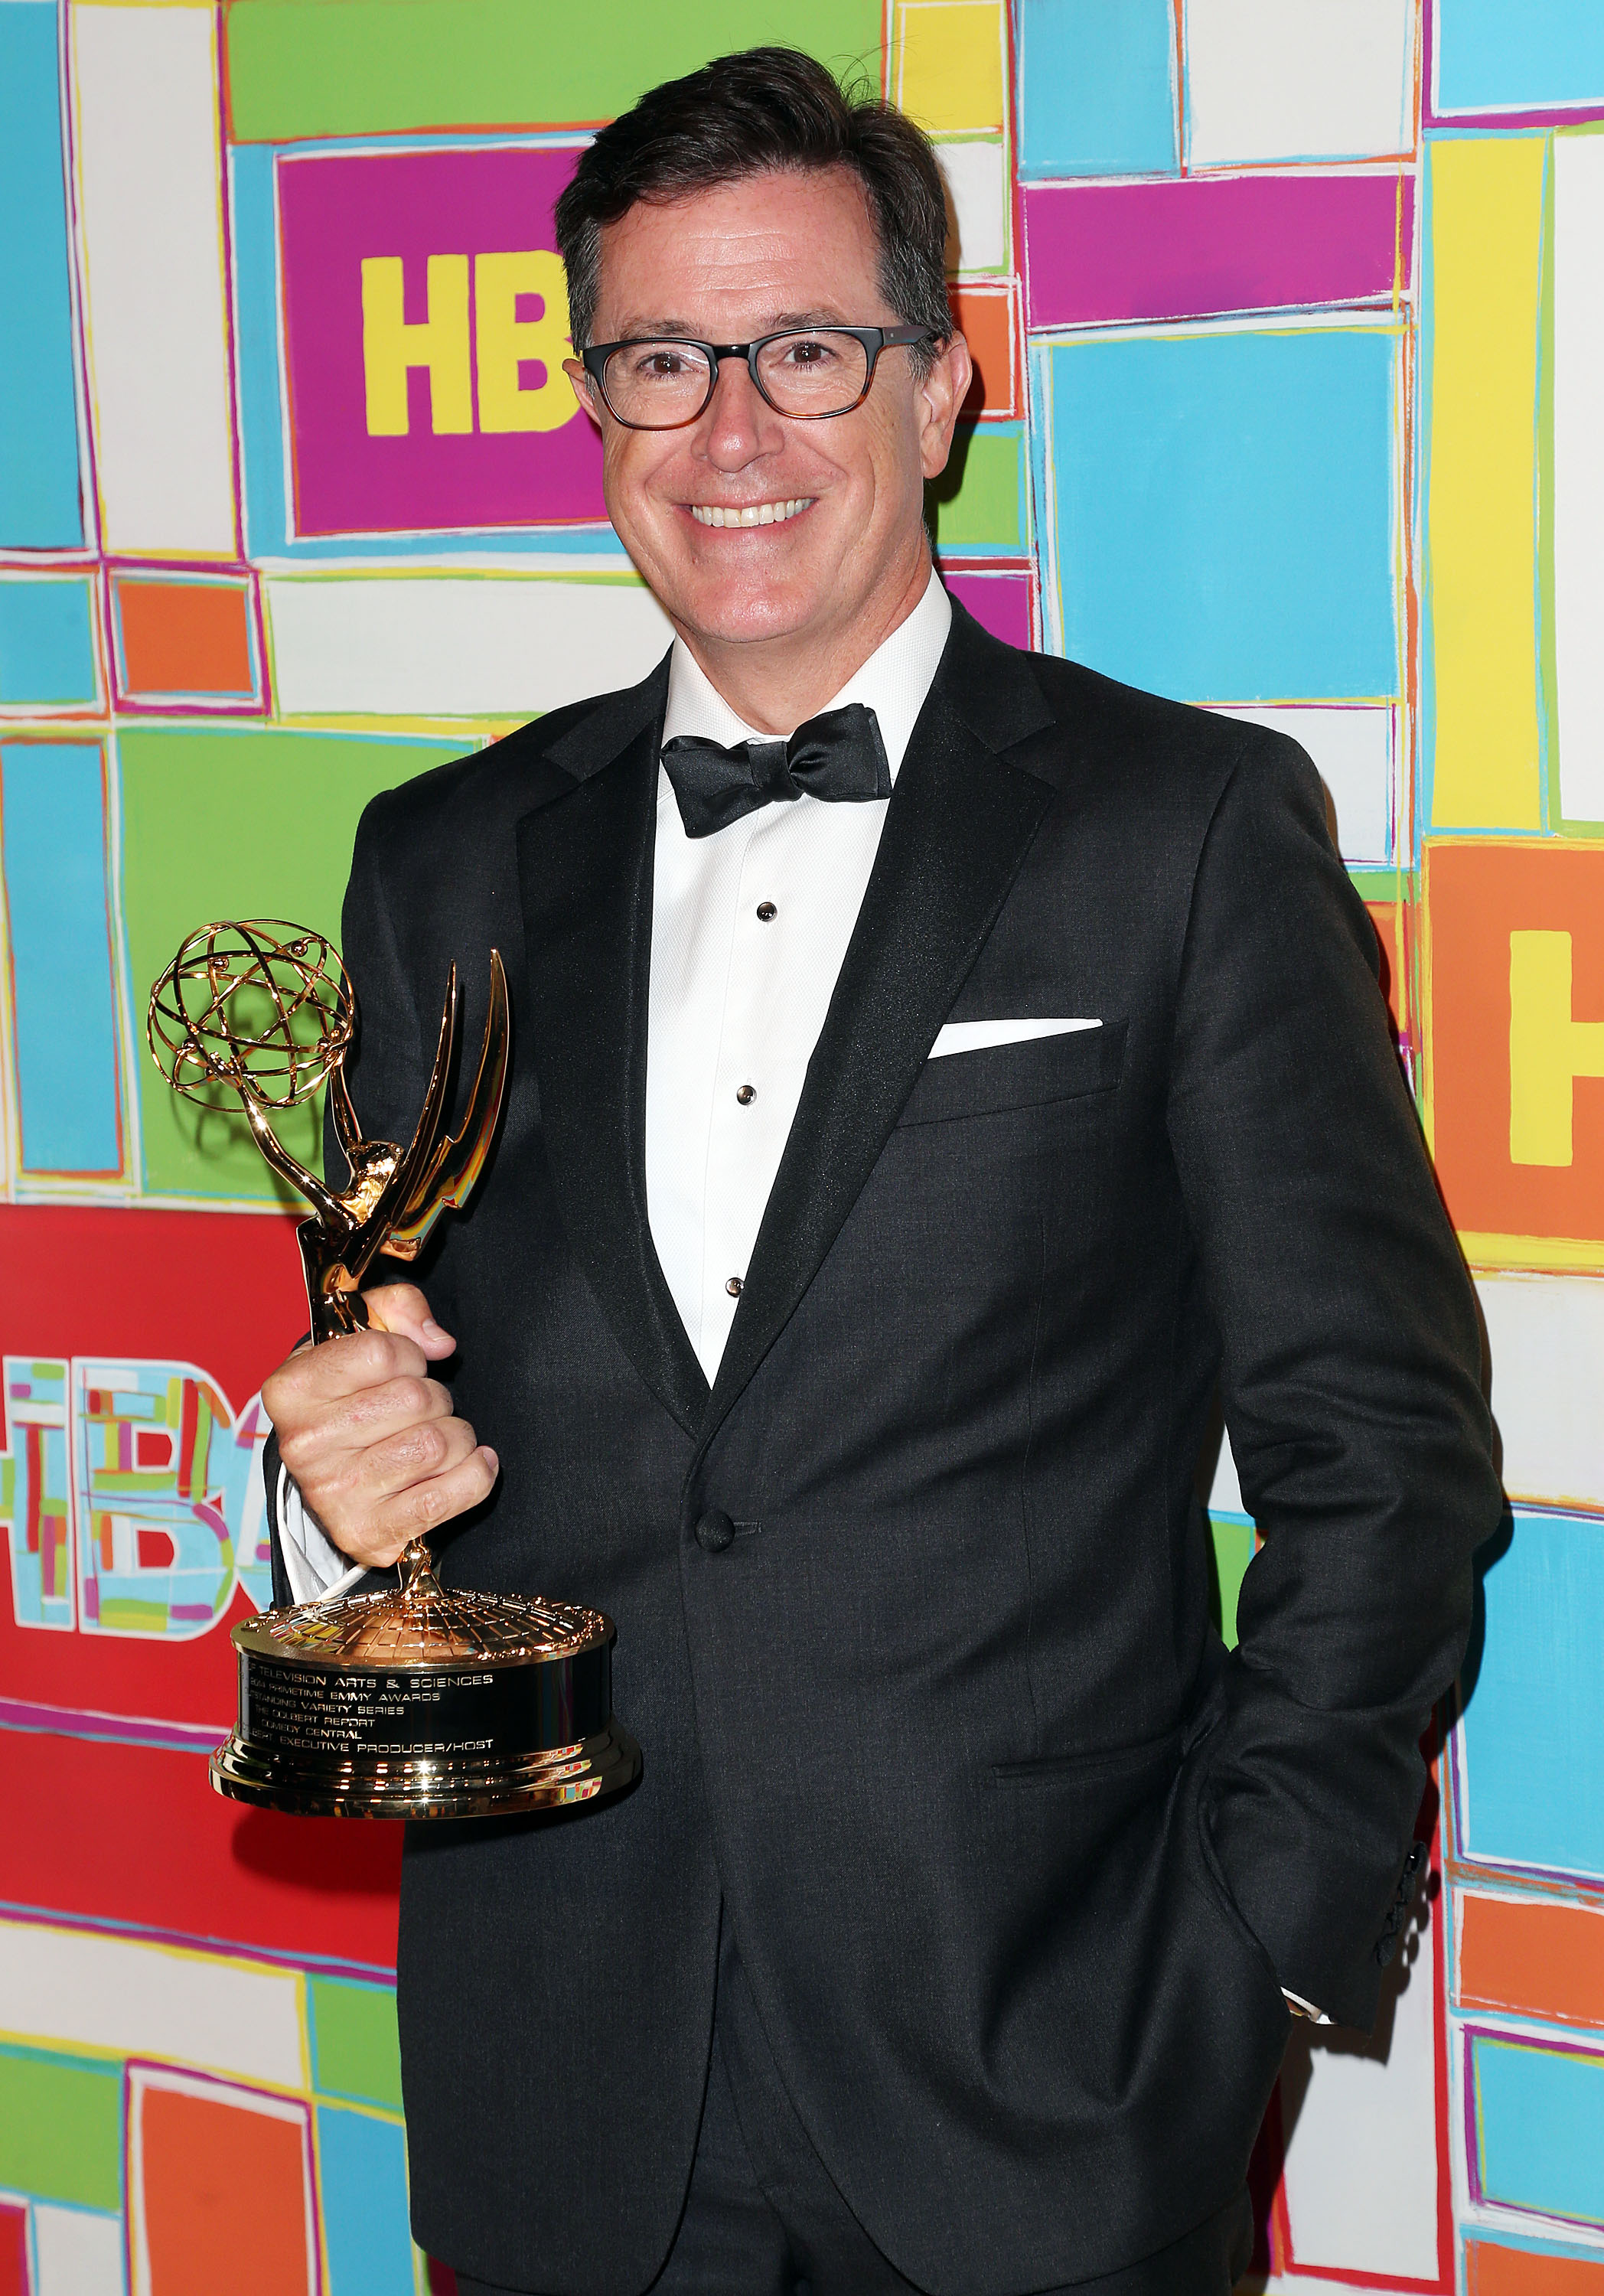 Stephen Colbert Net Worth 2017, Stephen Colbert Income, How Much Money does Stephen Colbert Make